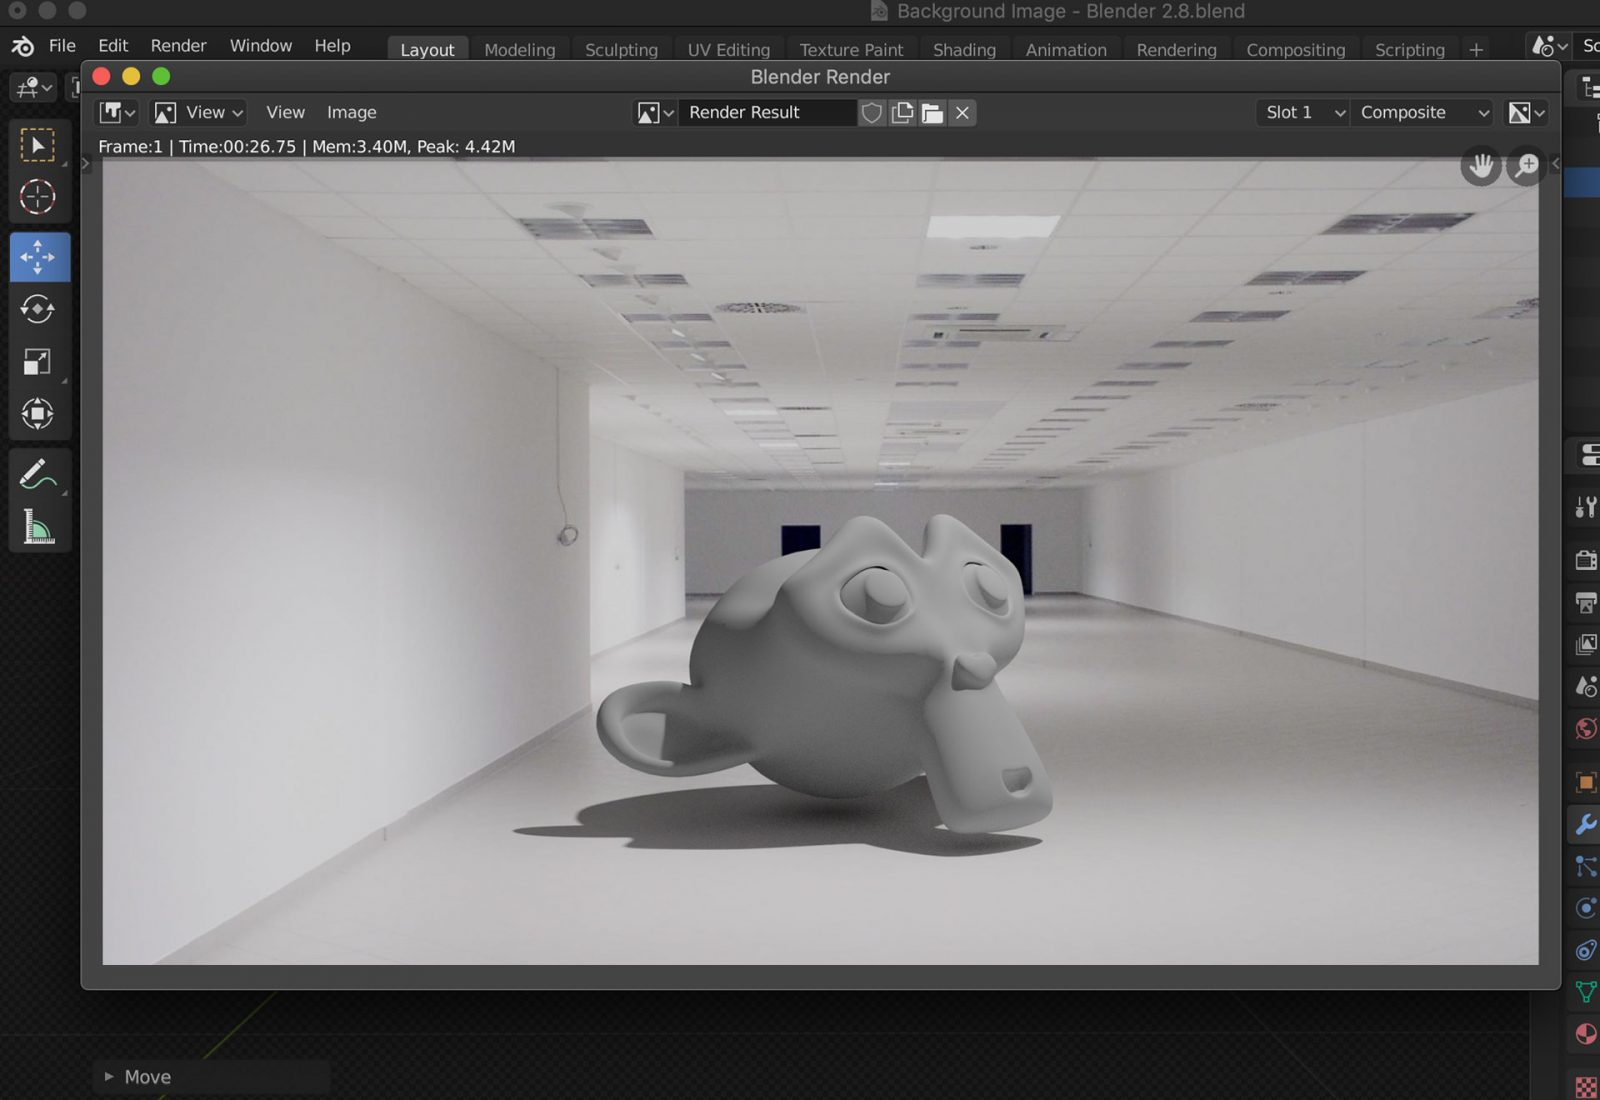 Create Shadow Catcher Object - step 8 example render with 3D object of background image